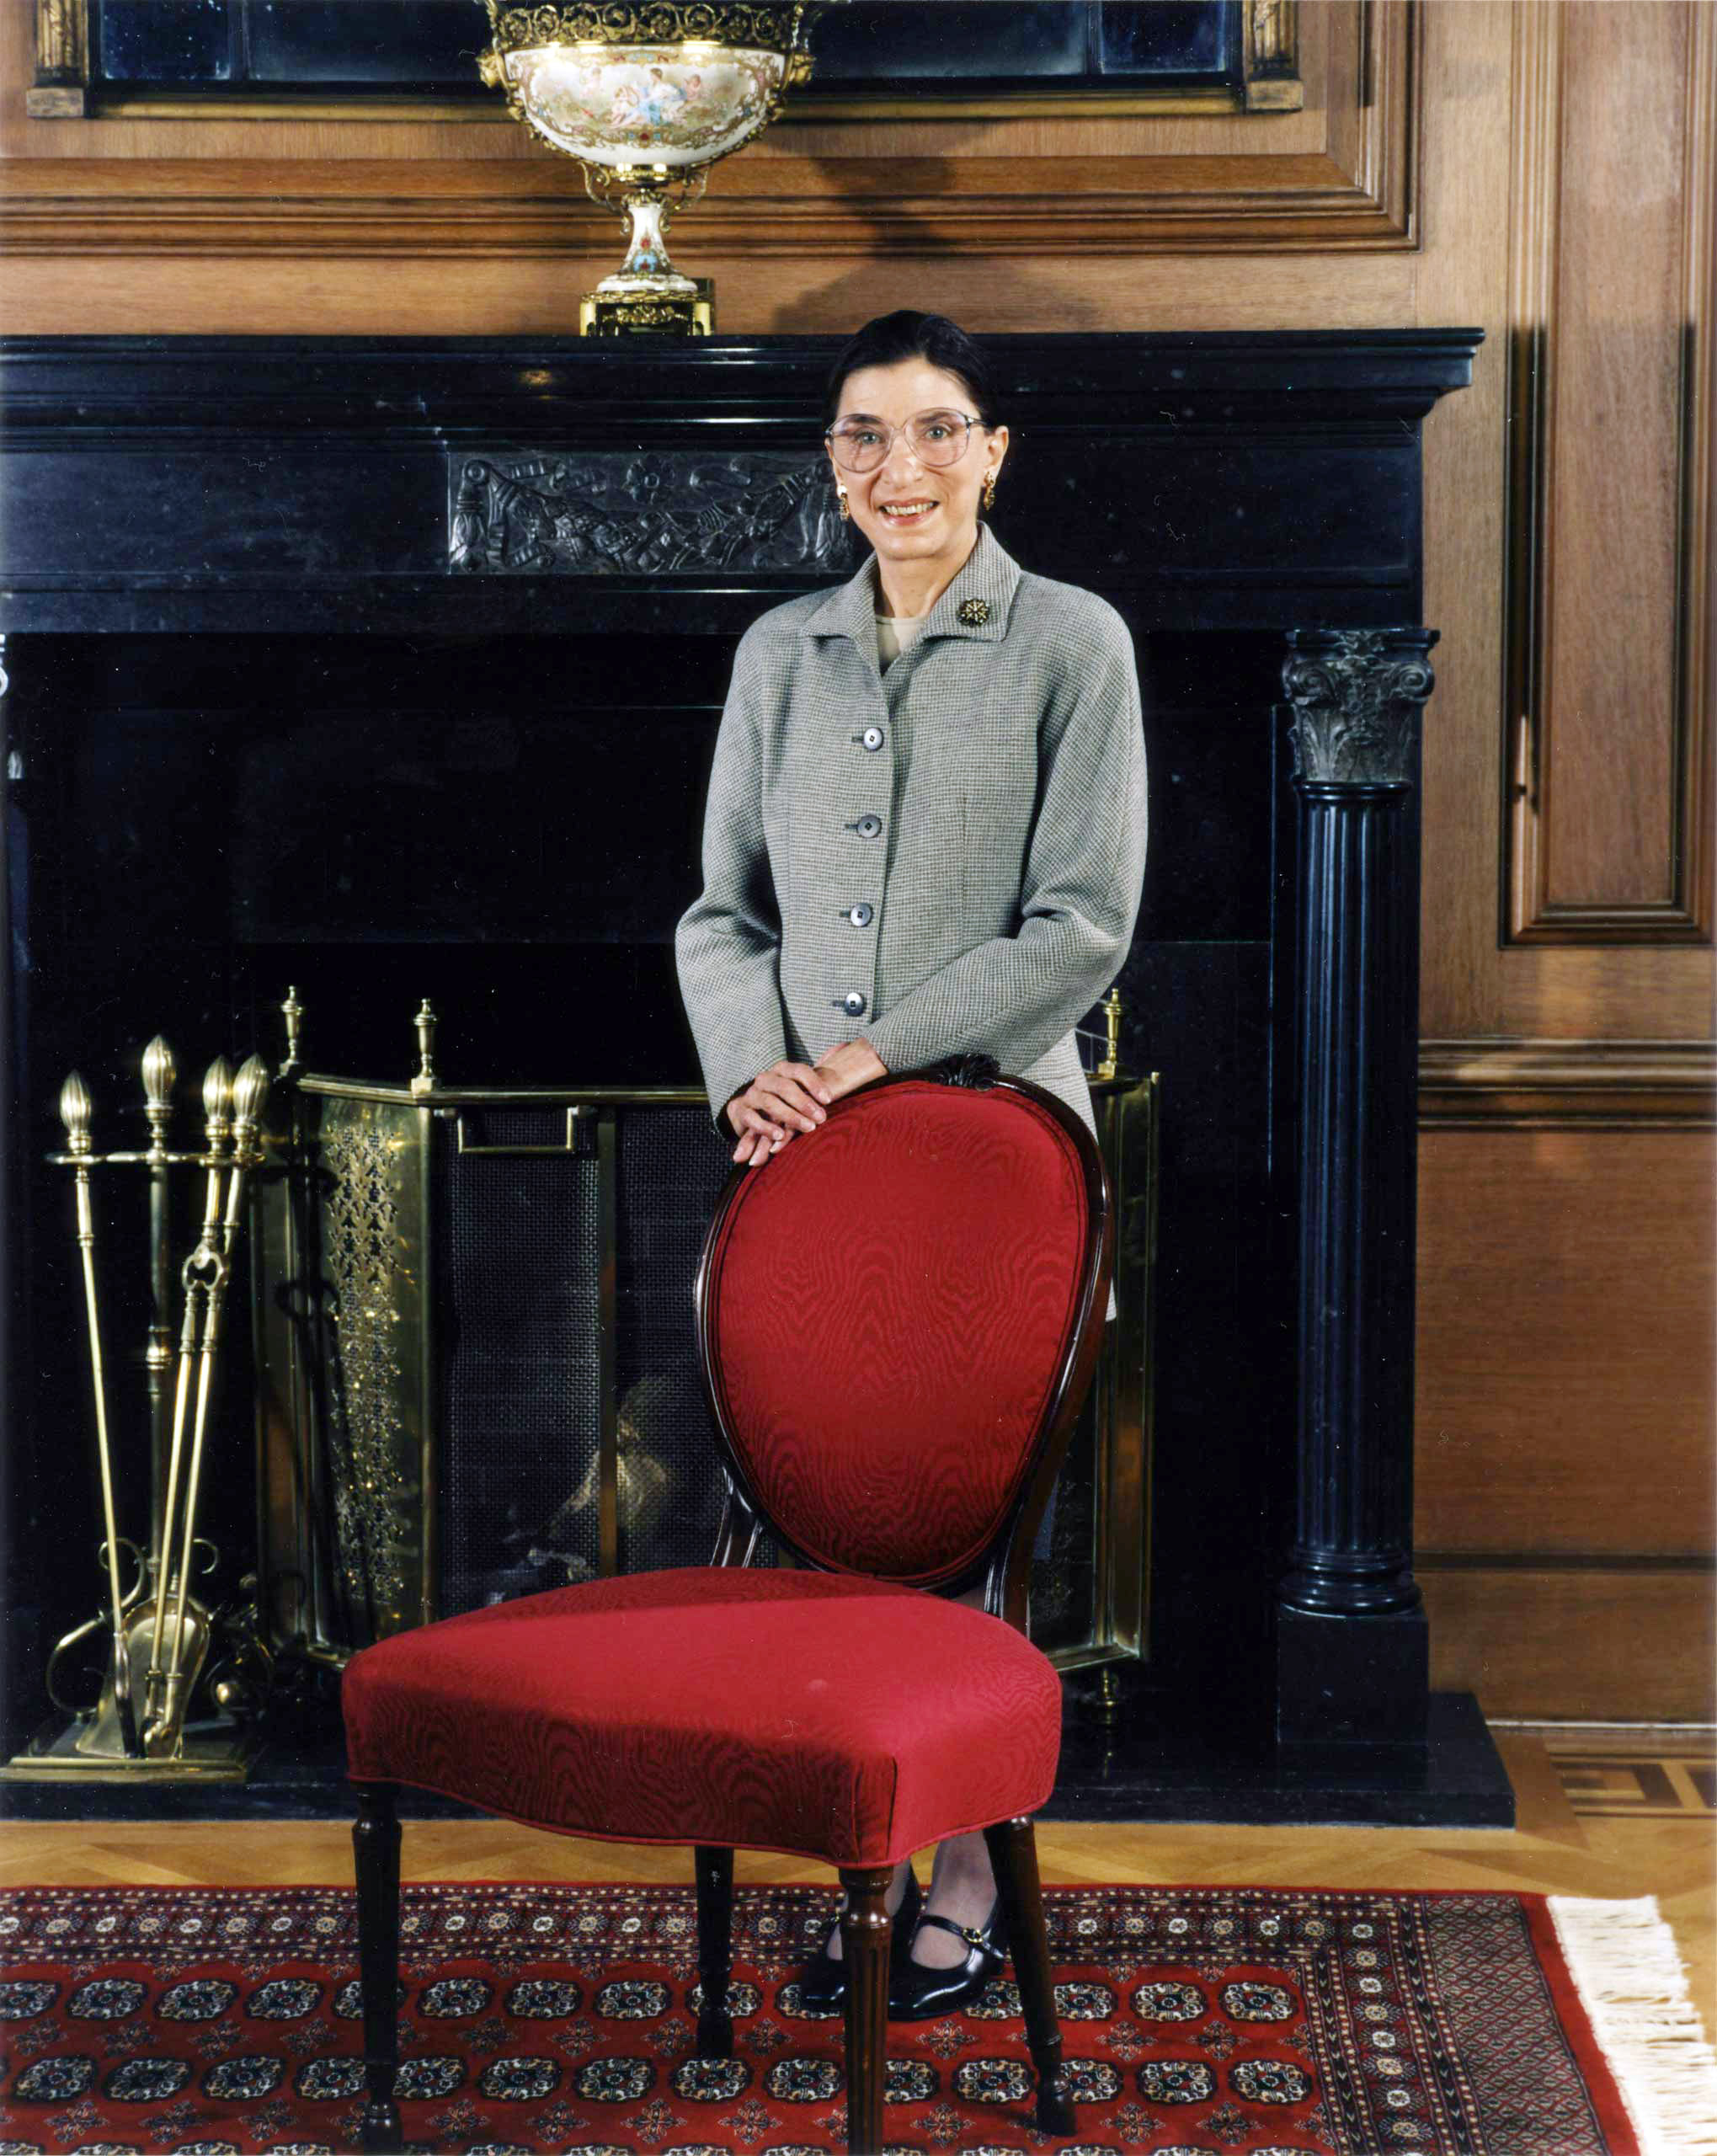 <b>Oct. 1, 1993</b> Informal portrait of Justice Ruth Bader Ginsburg standing before the mantle in the Justices' Dining Room in Washington.